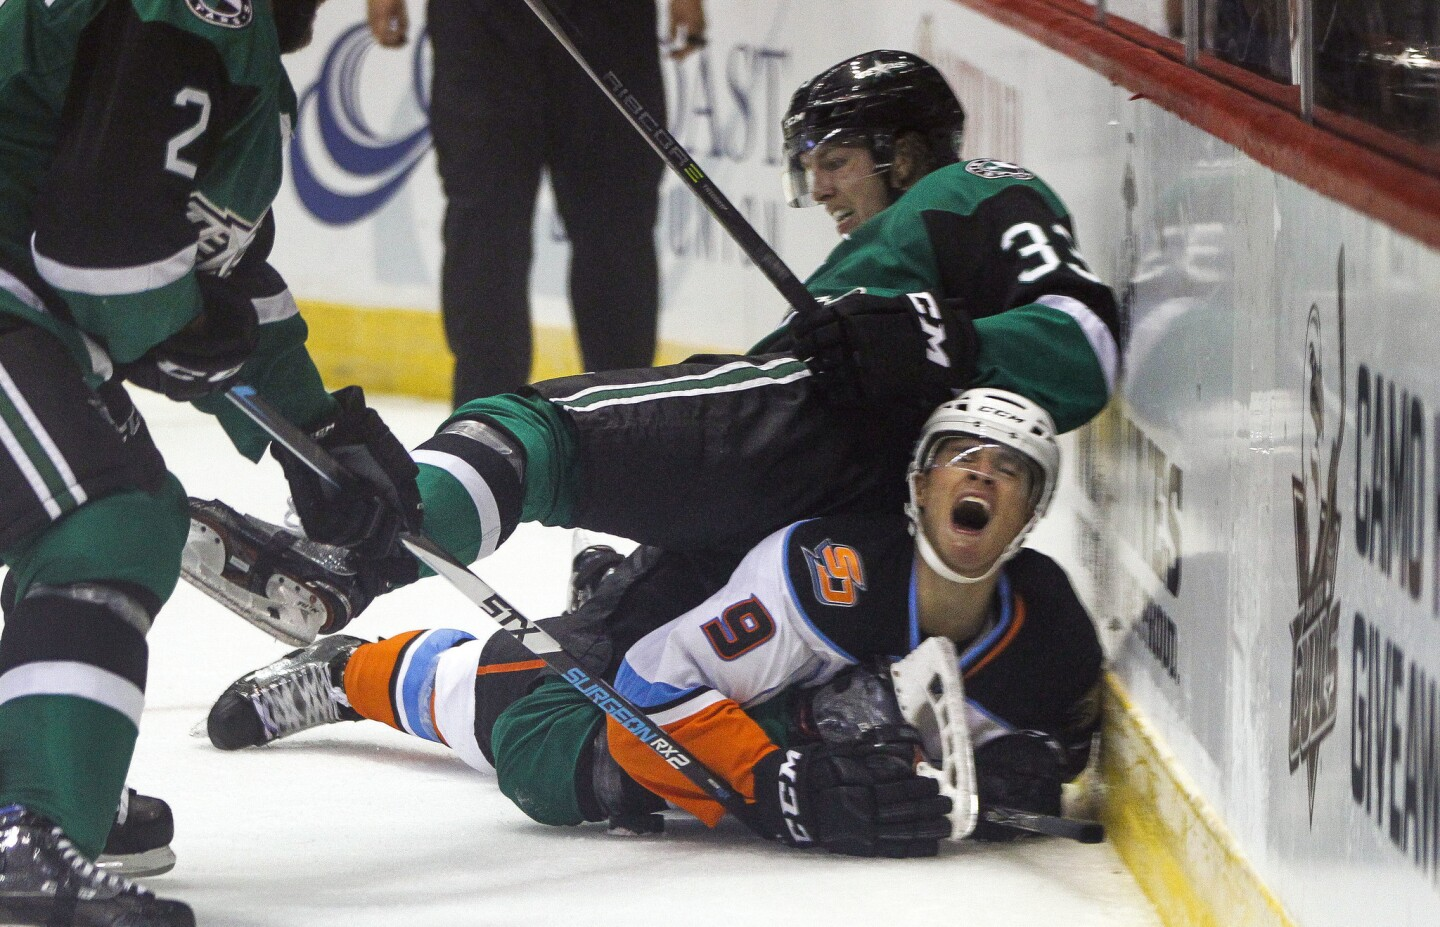 The Gulls' Kevin Roy reacts to the Texas Stars' Niklas Hansson falling on his back during the third period.